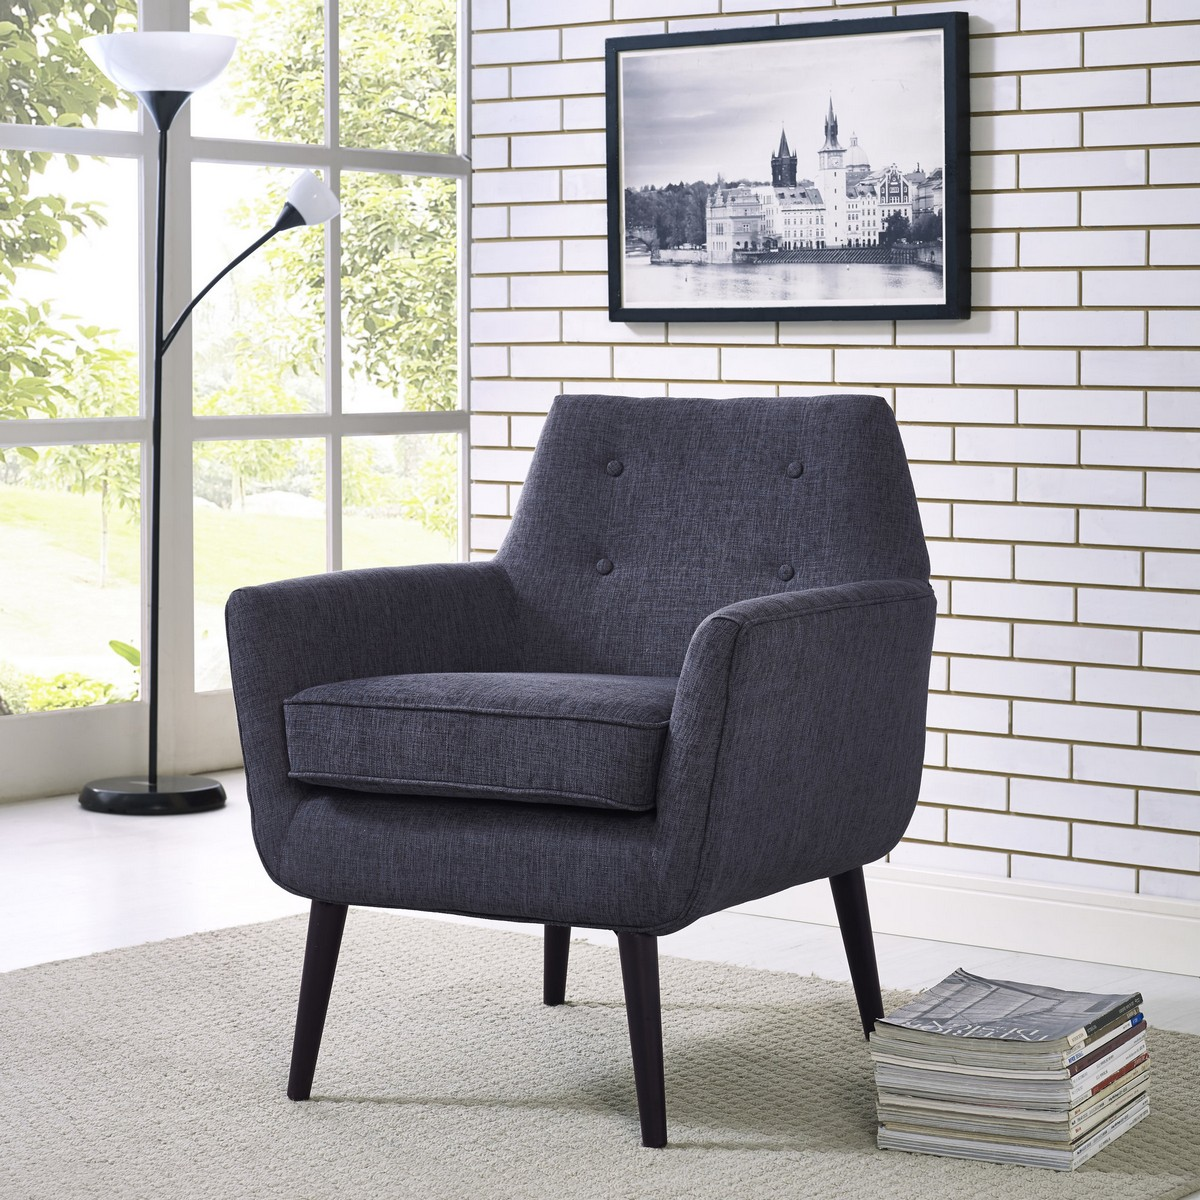 Tov Furniture Clyde Navy Linen Chair A38 P At Homelement Com